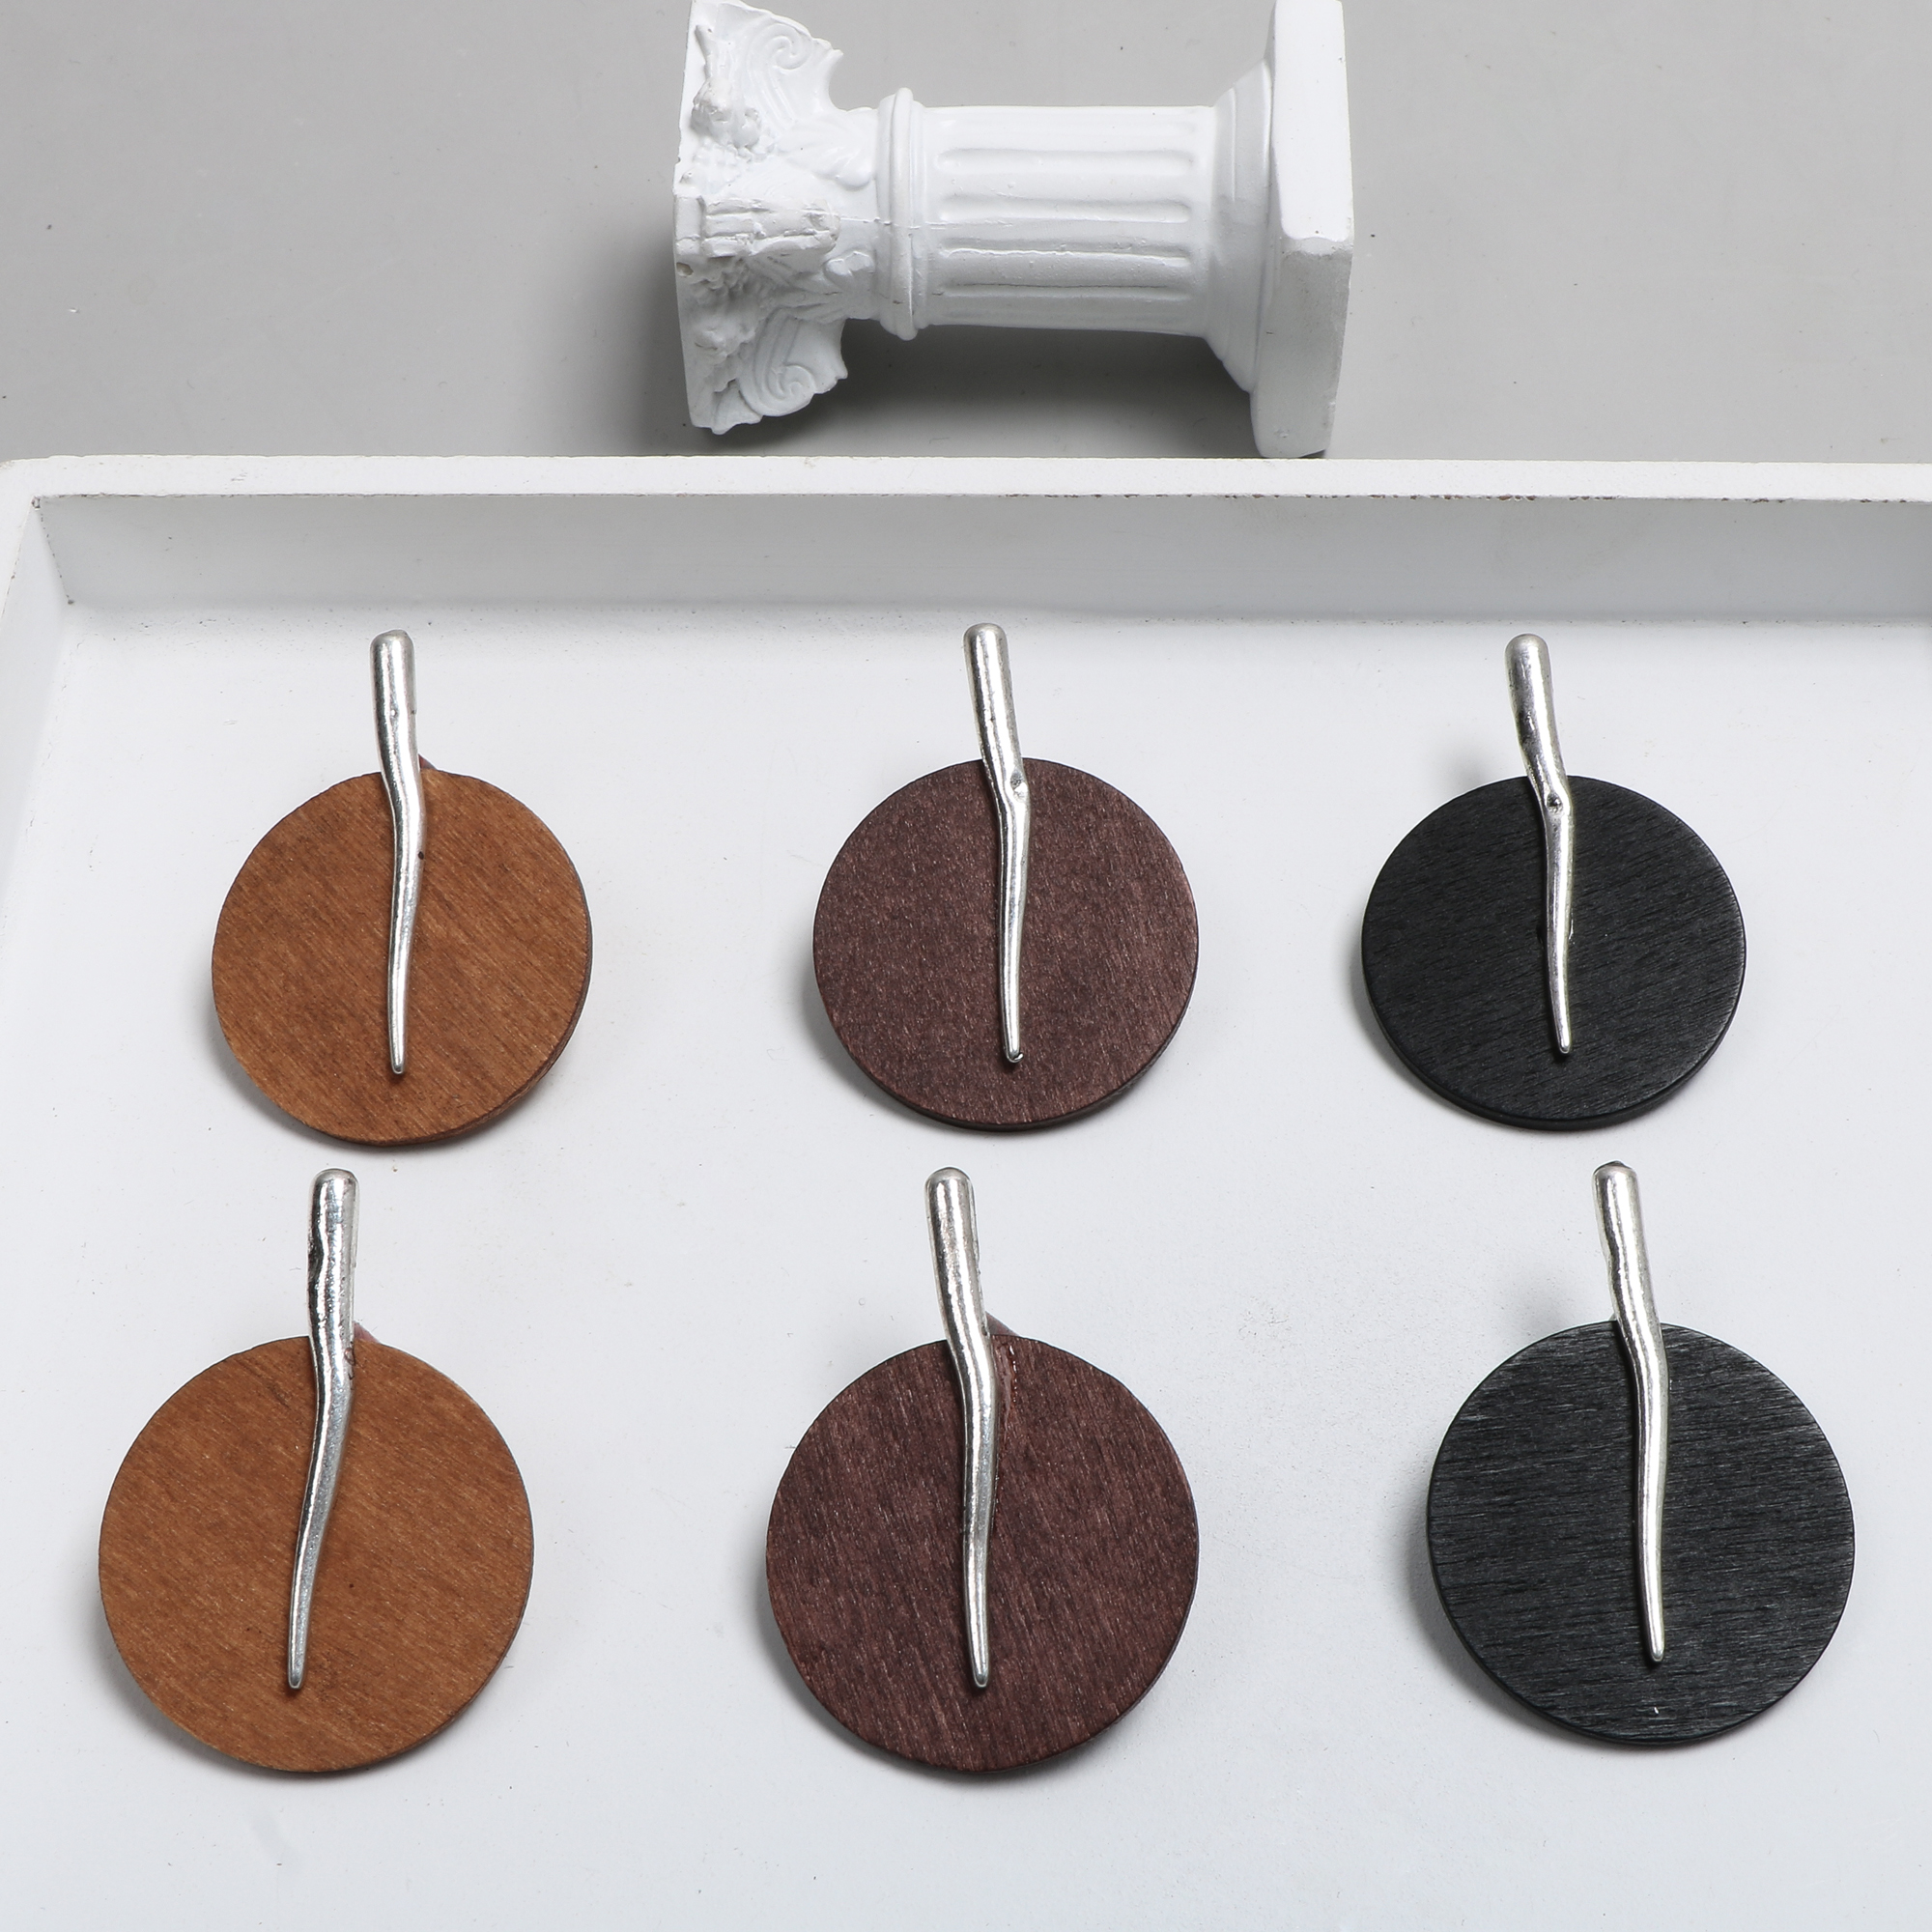 Ins Autumn And Winter Ancient Silver Log Round Wooden Earrings DIY Handmade Ornaments Earrings Accessories Materials